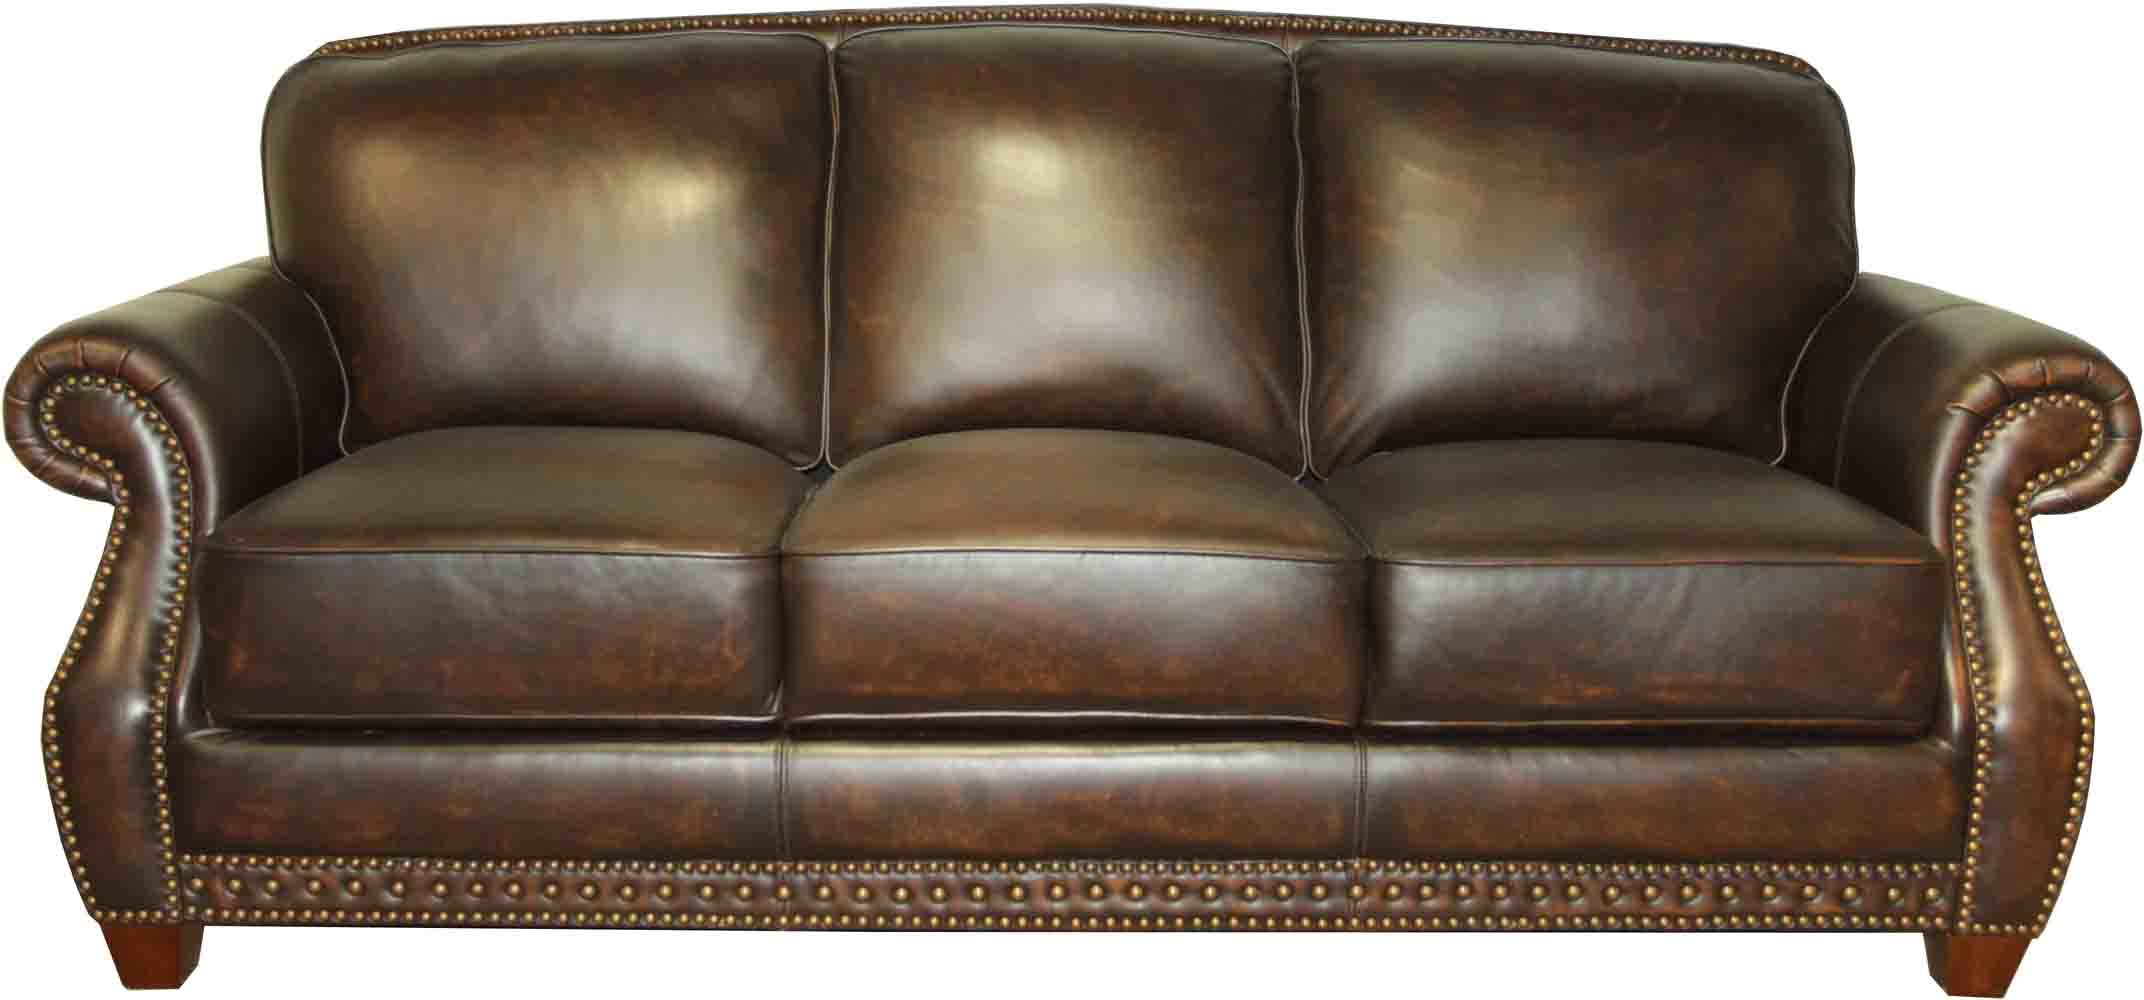 beautiful leather sofa couch portrait-Incredible Leather sofa Couch Photo